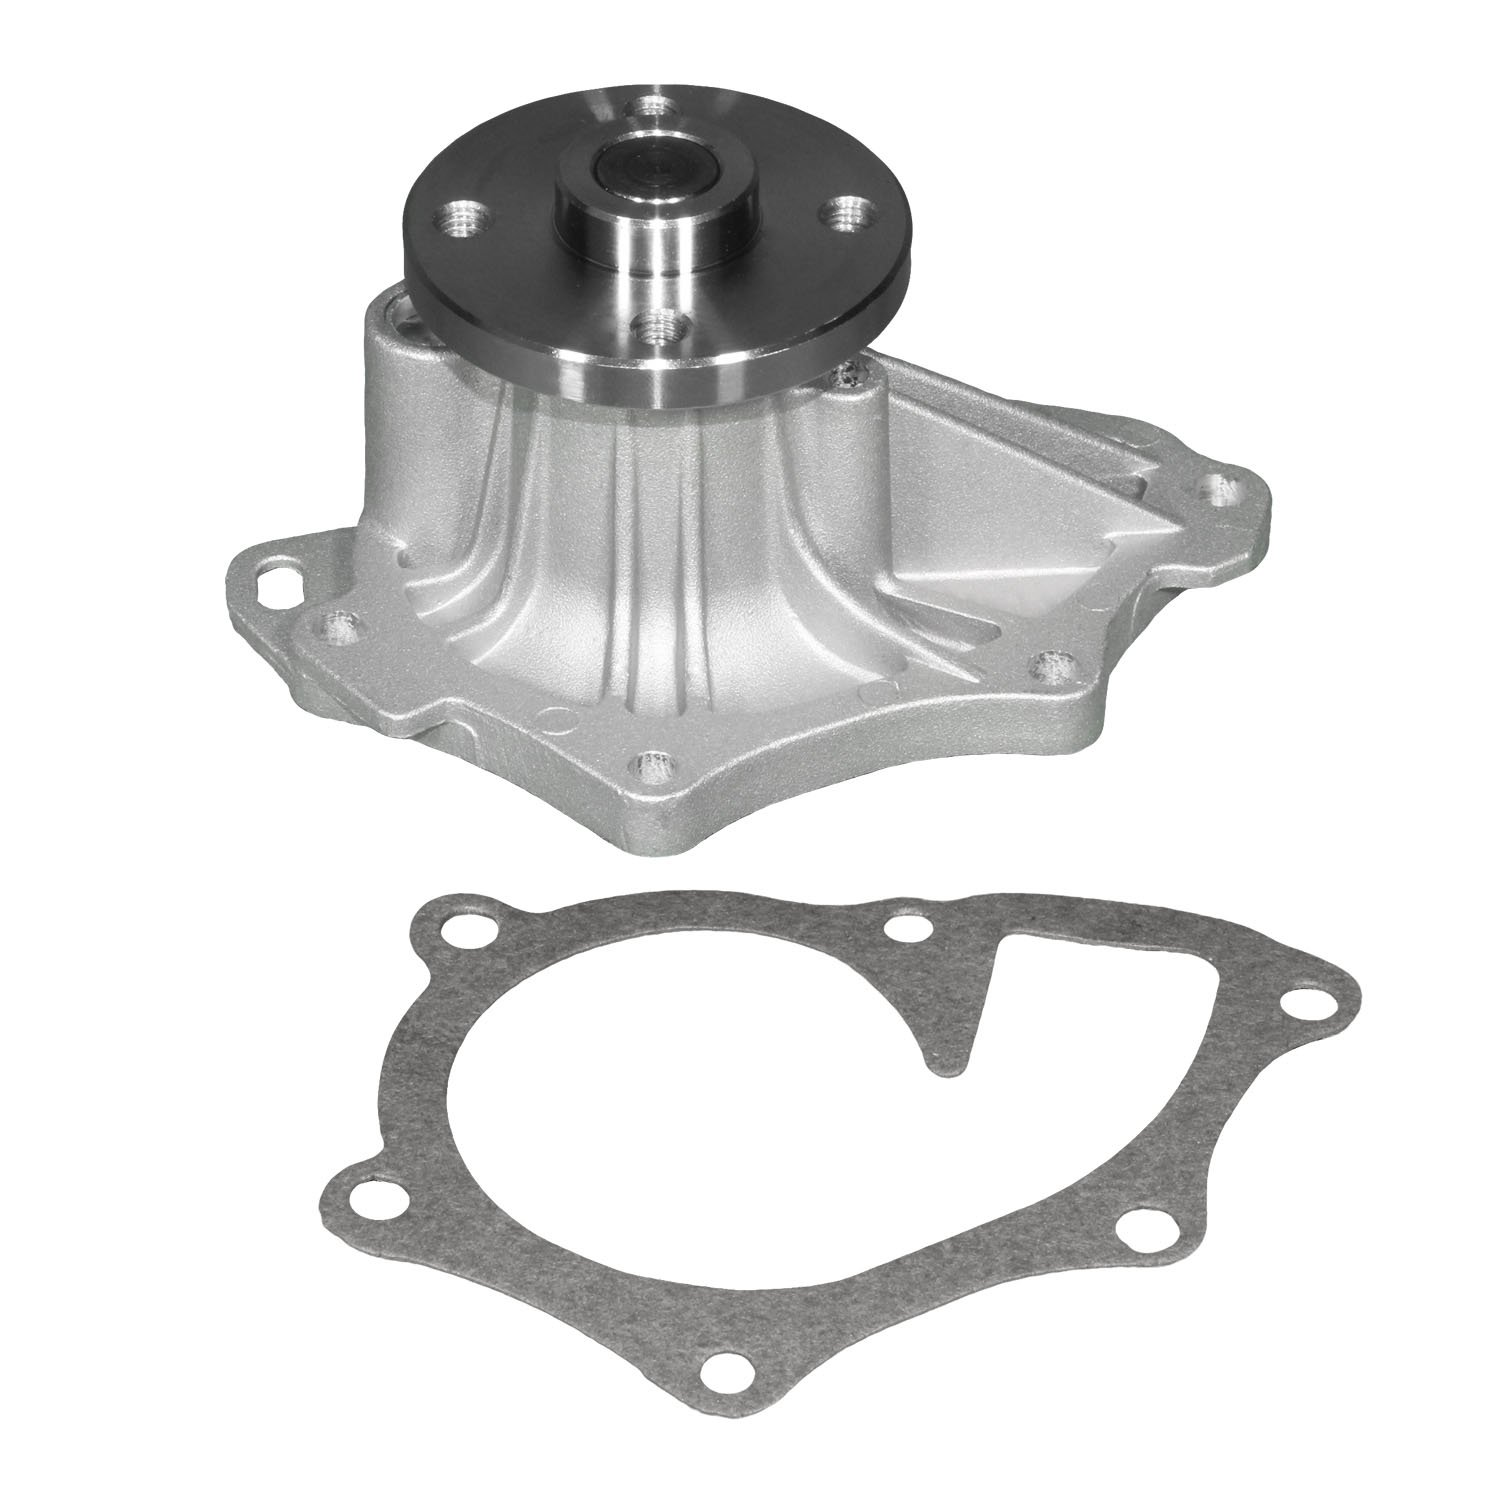 ACDelco 252-856 Professional Water Pump Kit